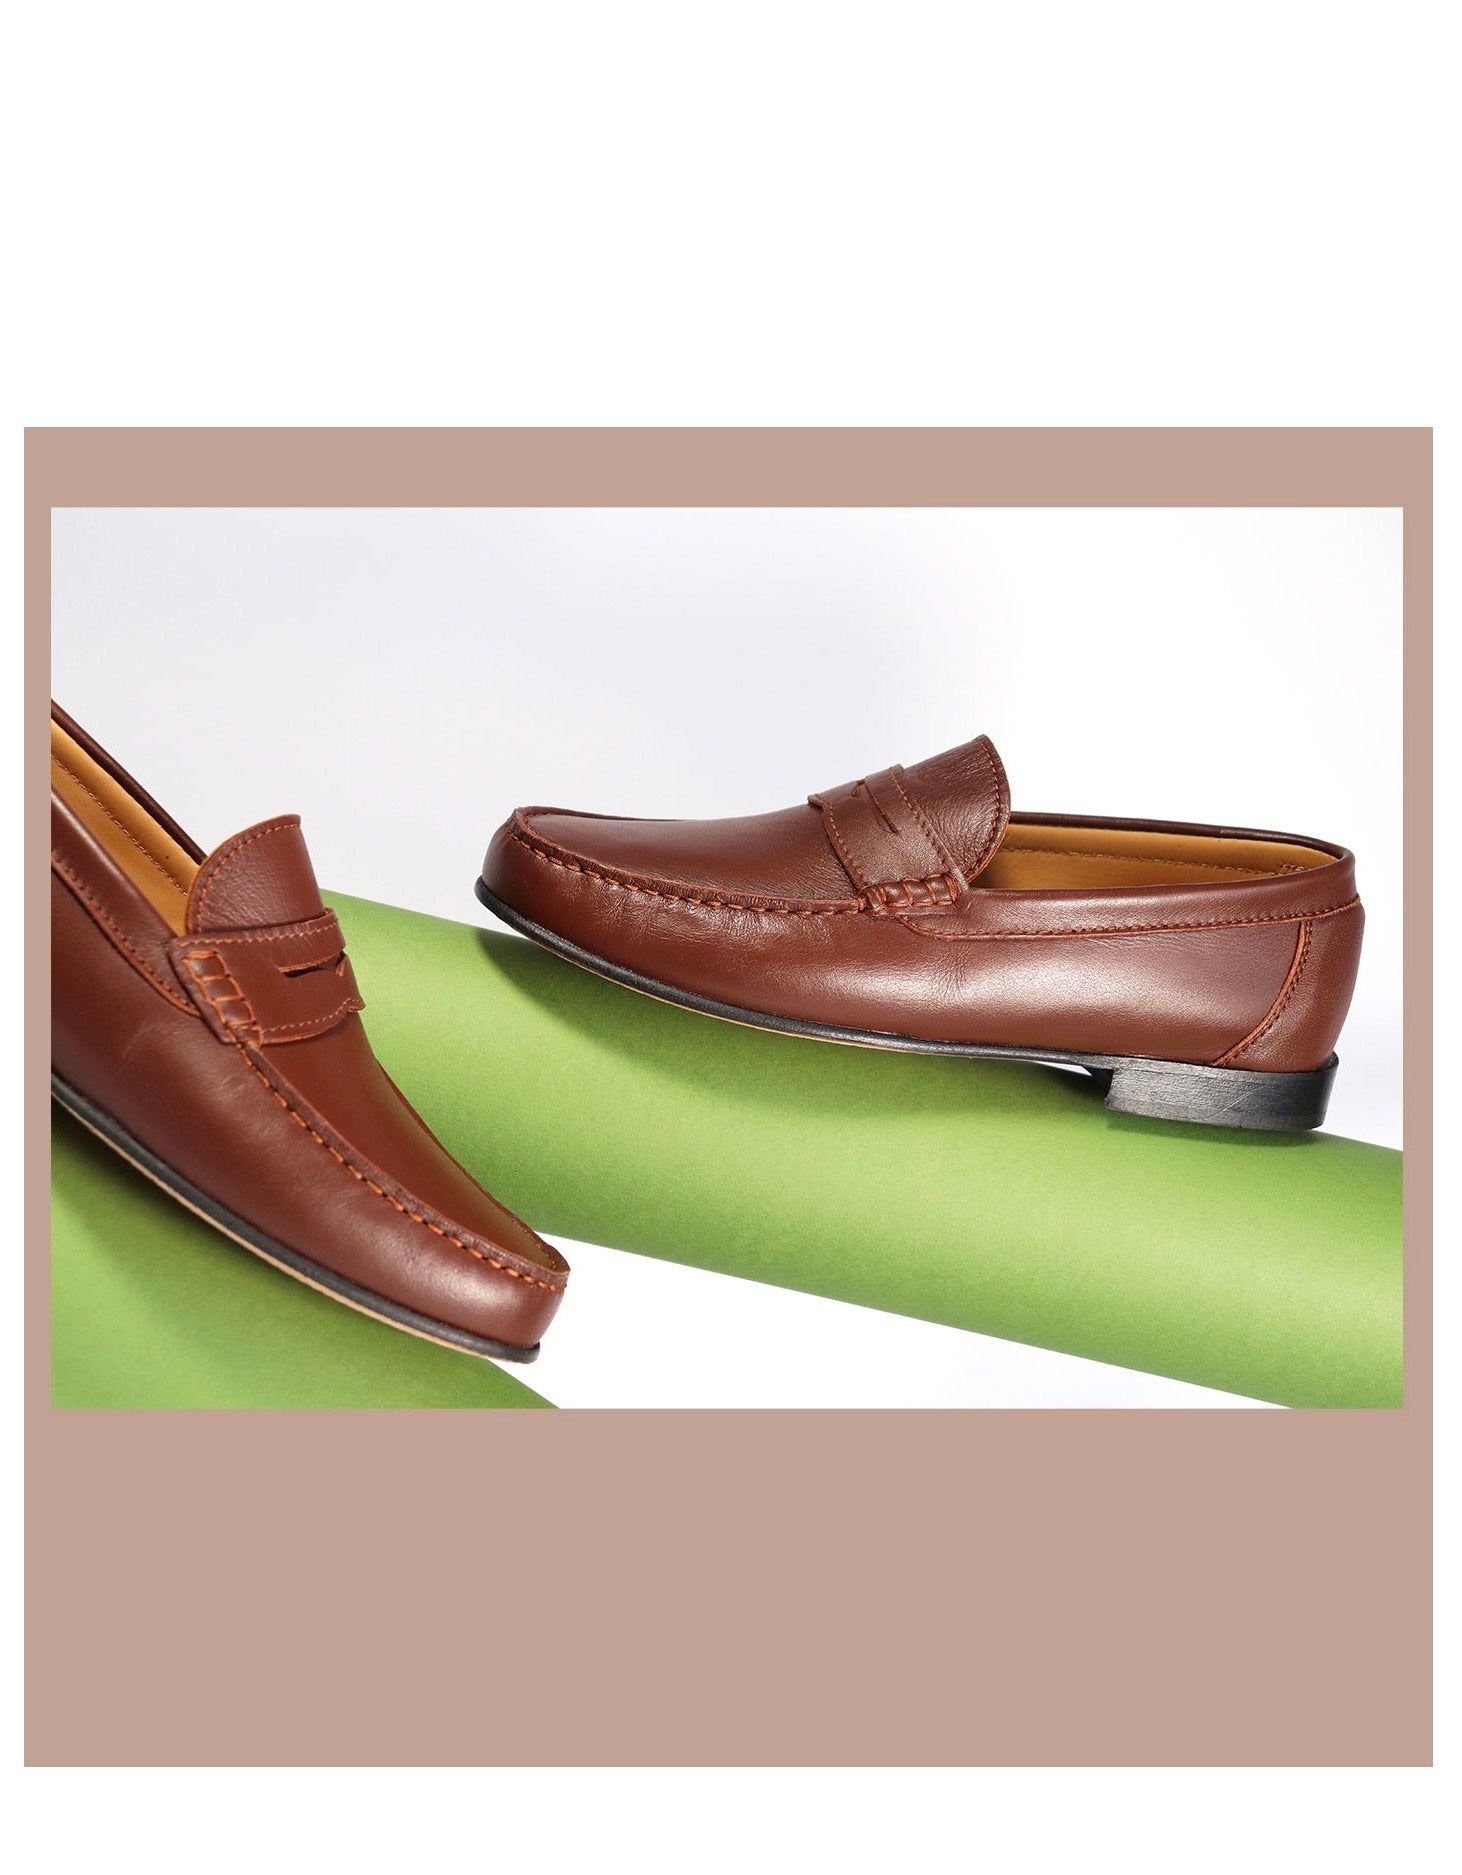 Hugs & Co. men's shoes and loafers